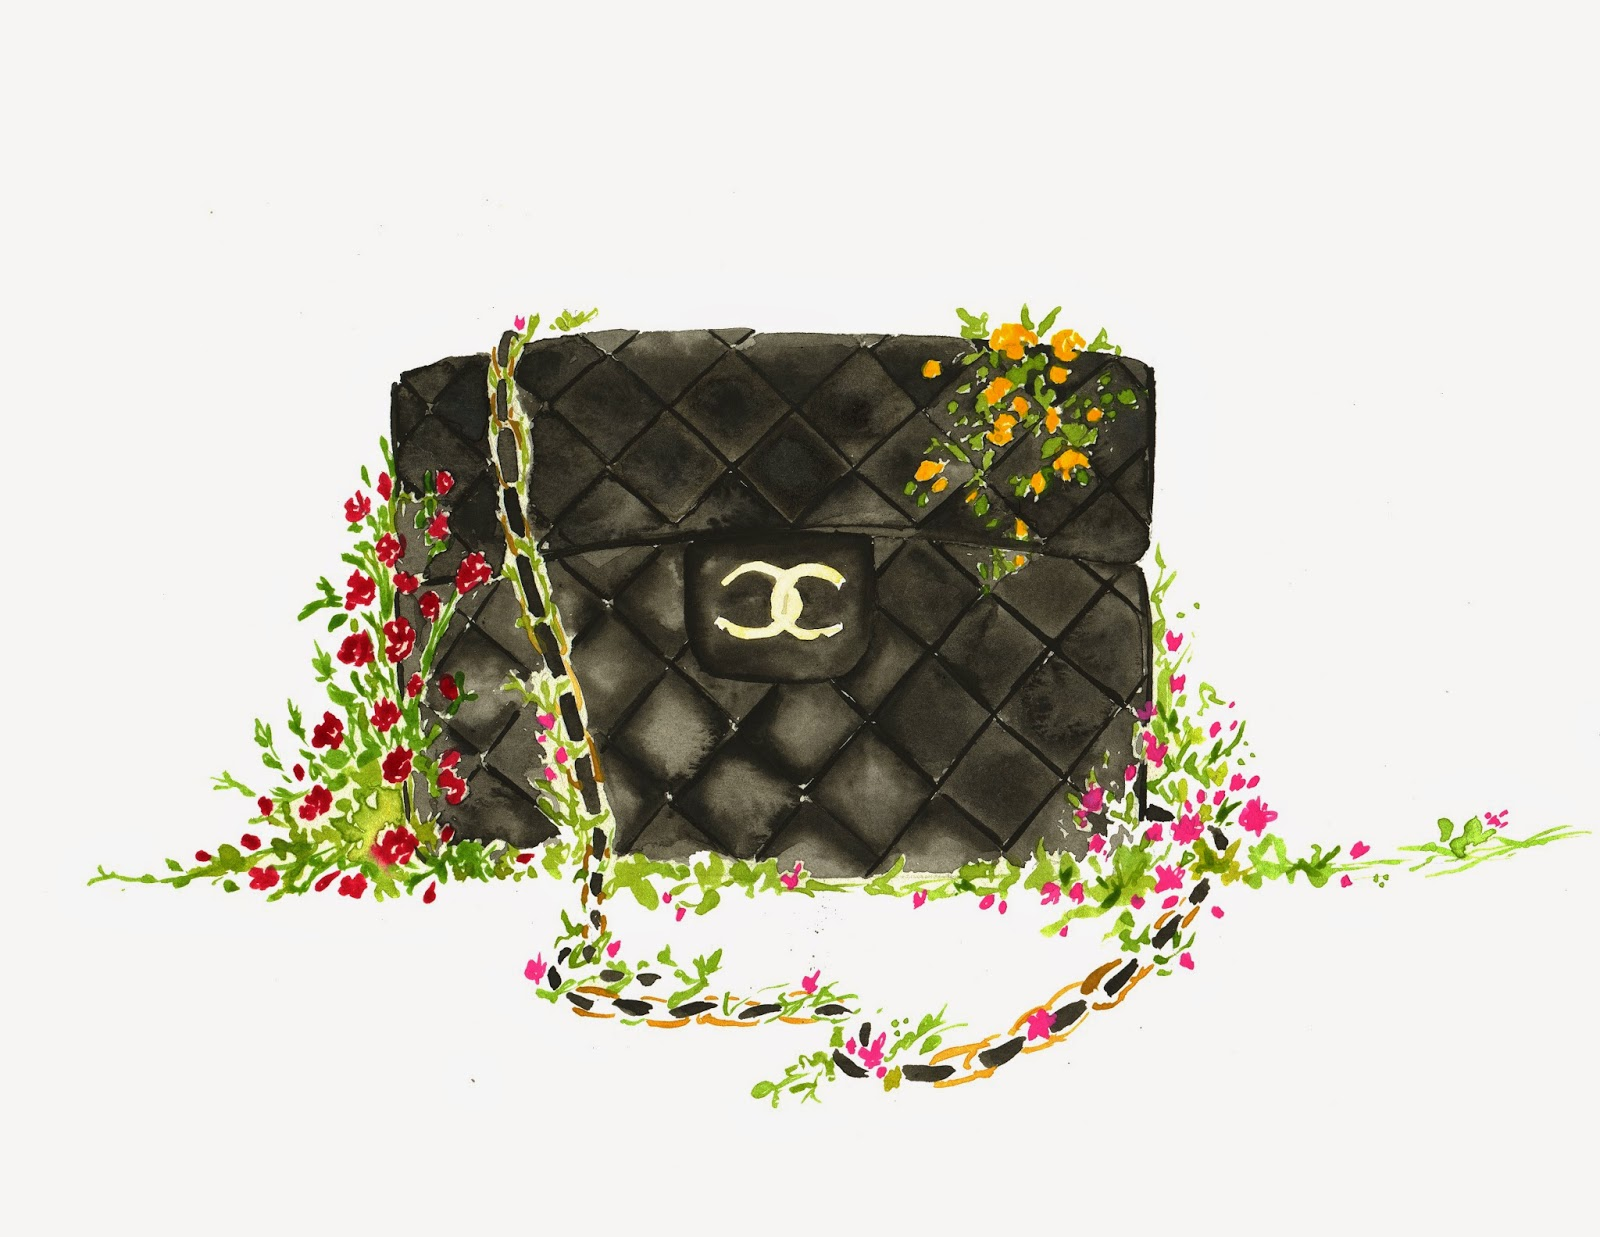 ec2a83ee8648 Chanel Bags Illustration Flowers | Gardening: Flower and Vegetables